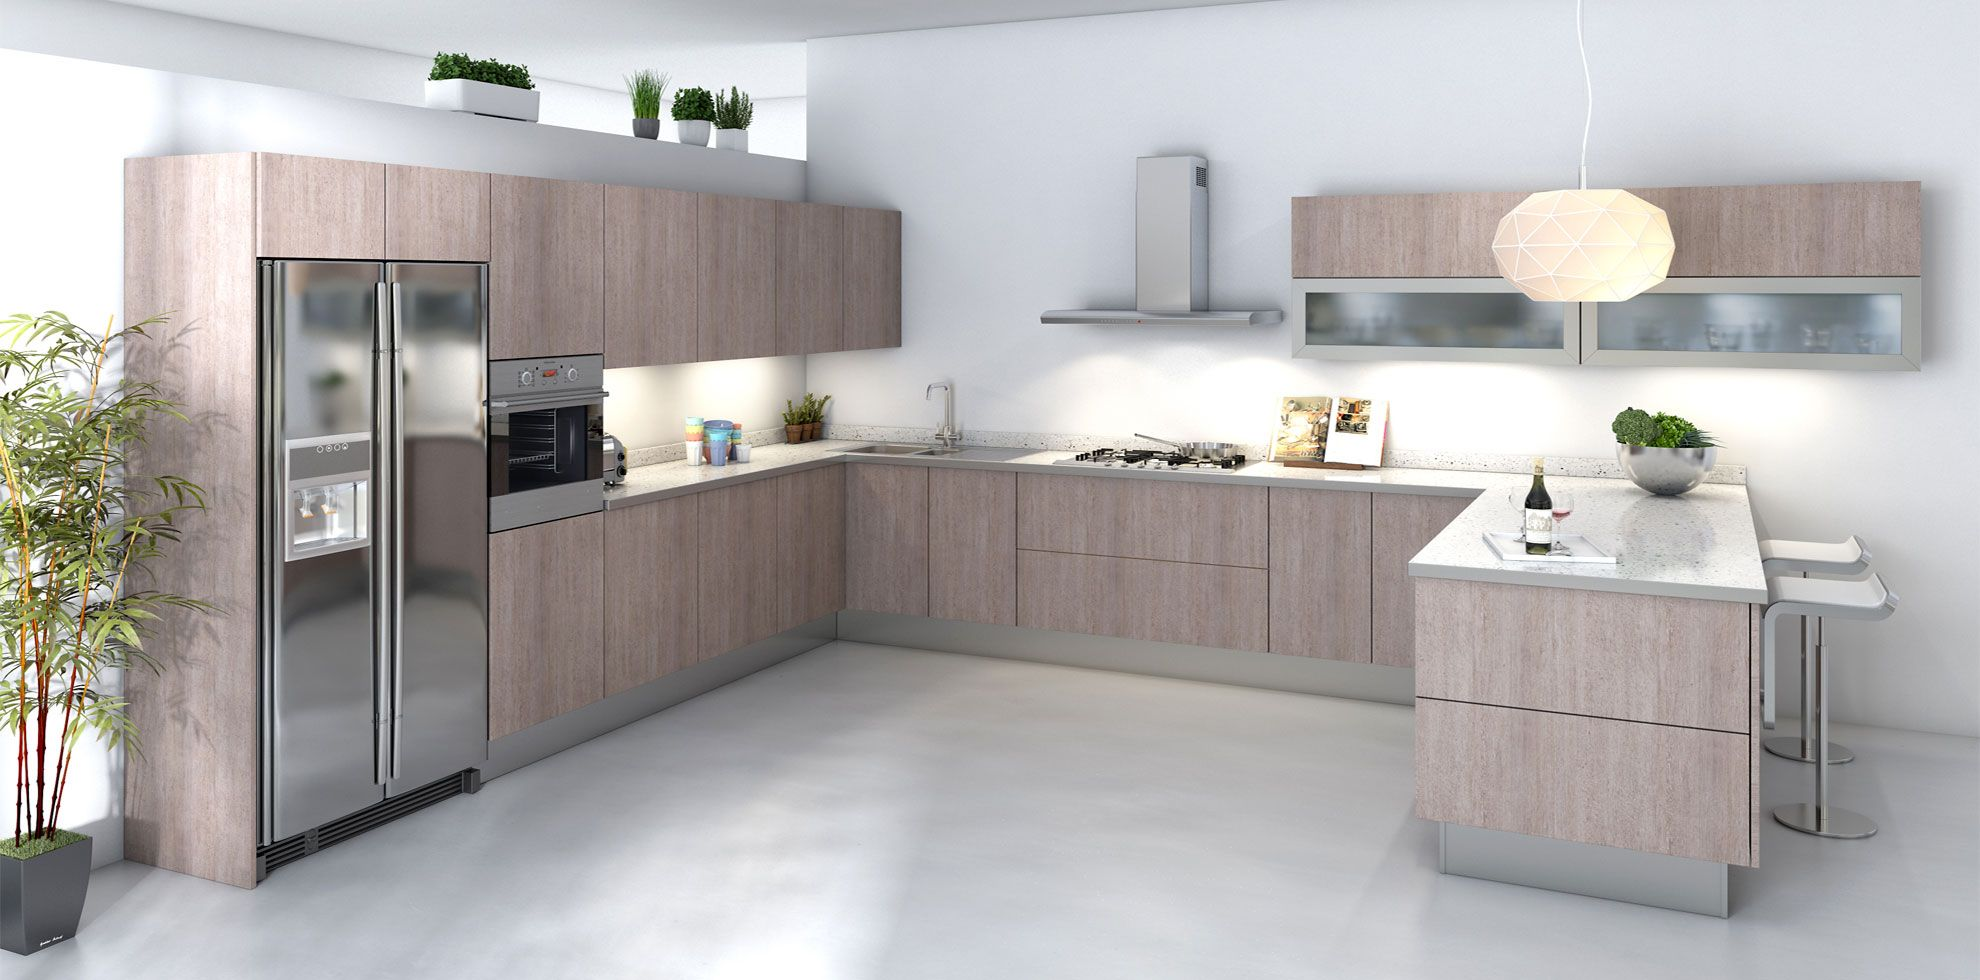 Aalst Modern Kitchen Cabinets Modern Rta Cabinets Modern Kitchen Modern Kitchen Renovation European Kitchen Cabinets